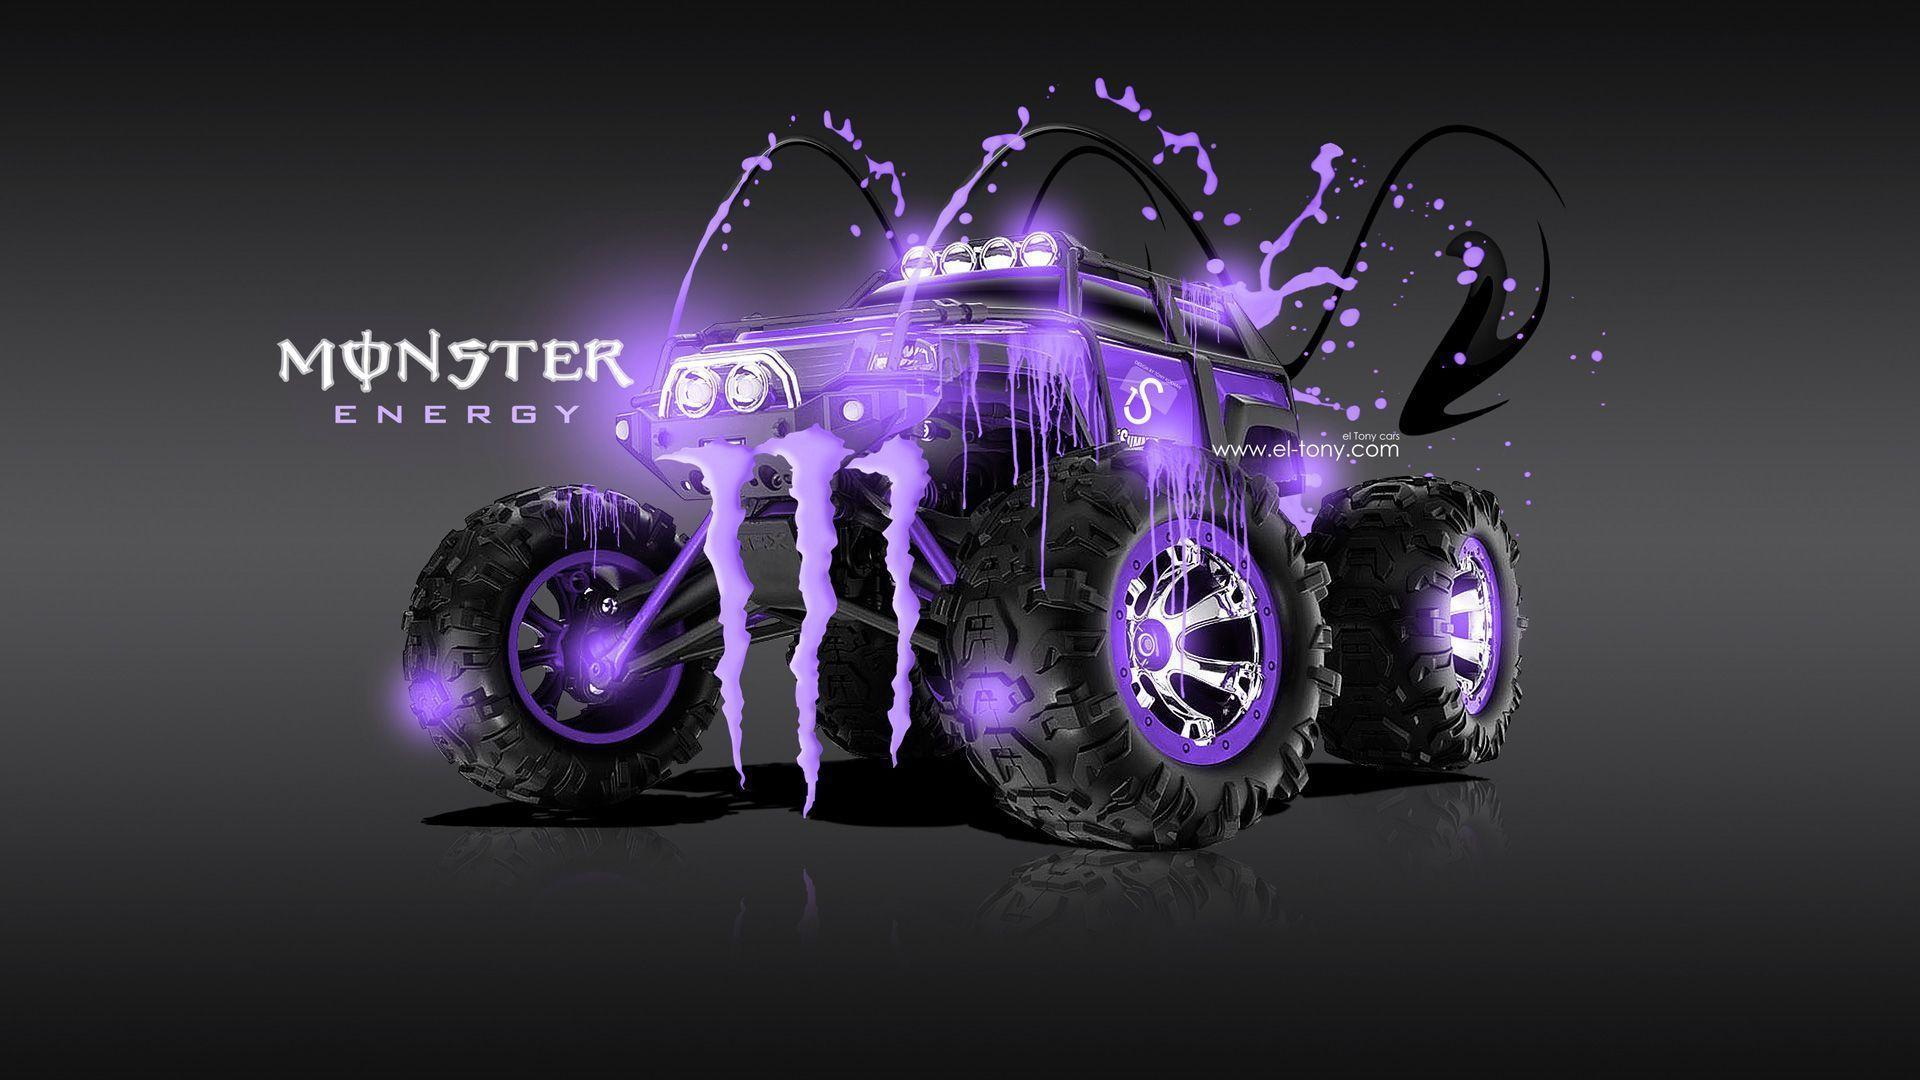 Monster energy logo wallpapers wallpaper cave purple monster energy logo monster wallpaper 2857 wallpaper voltagebd Choice Image